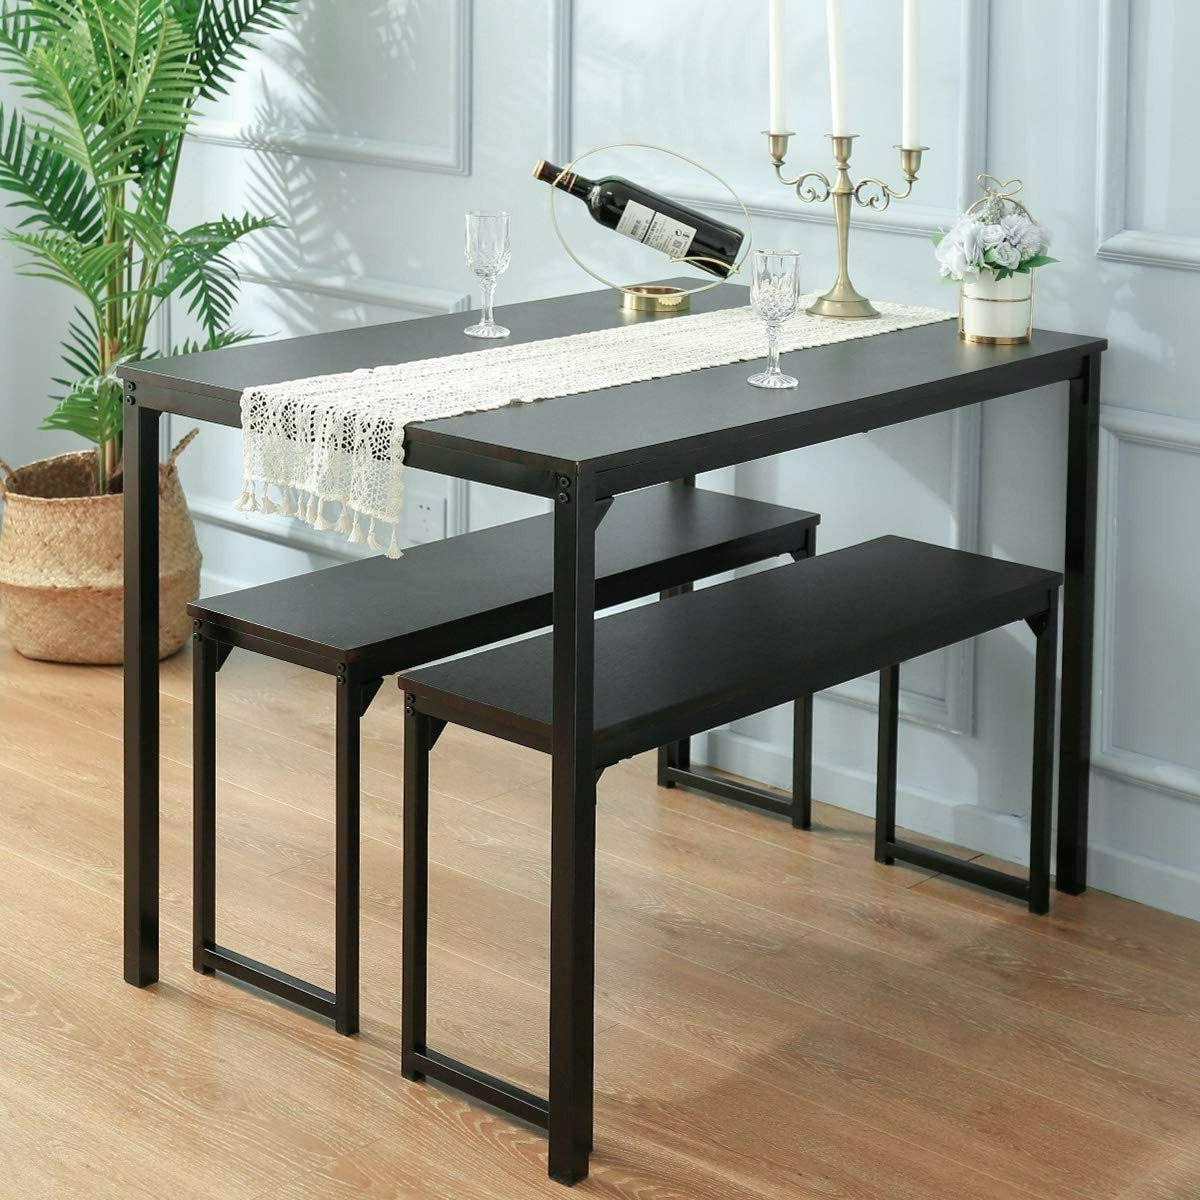 3 piece dining table set 2 benches